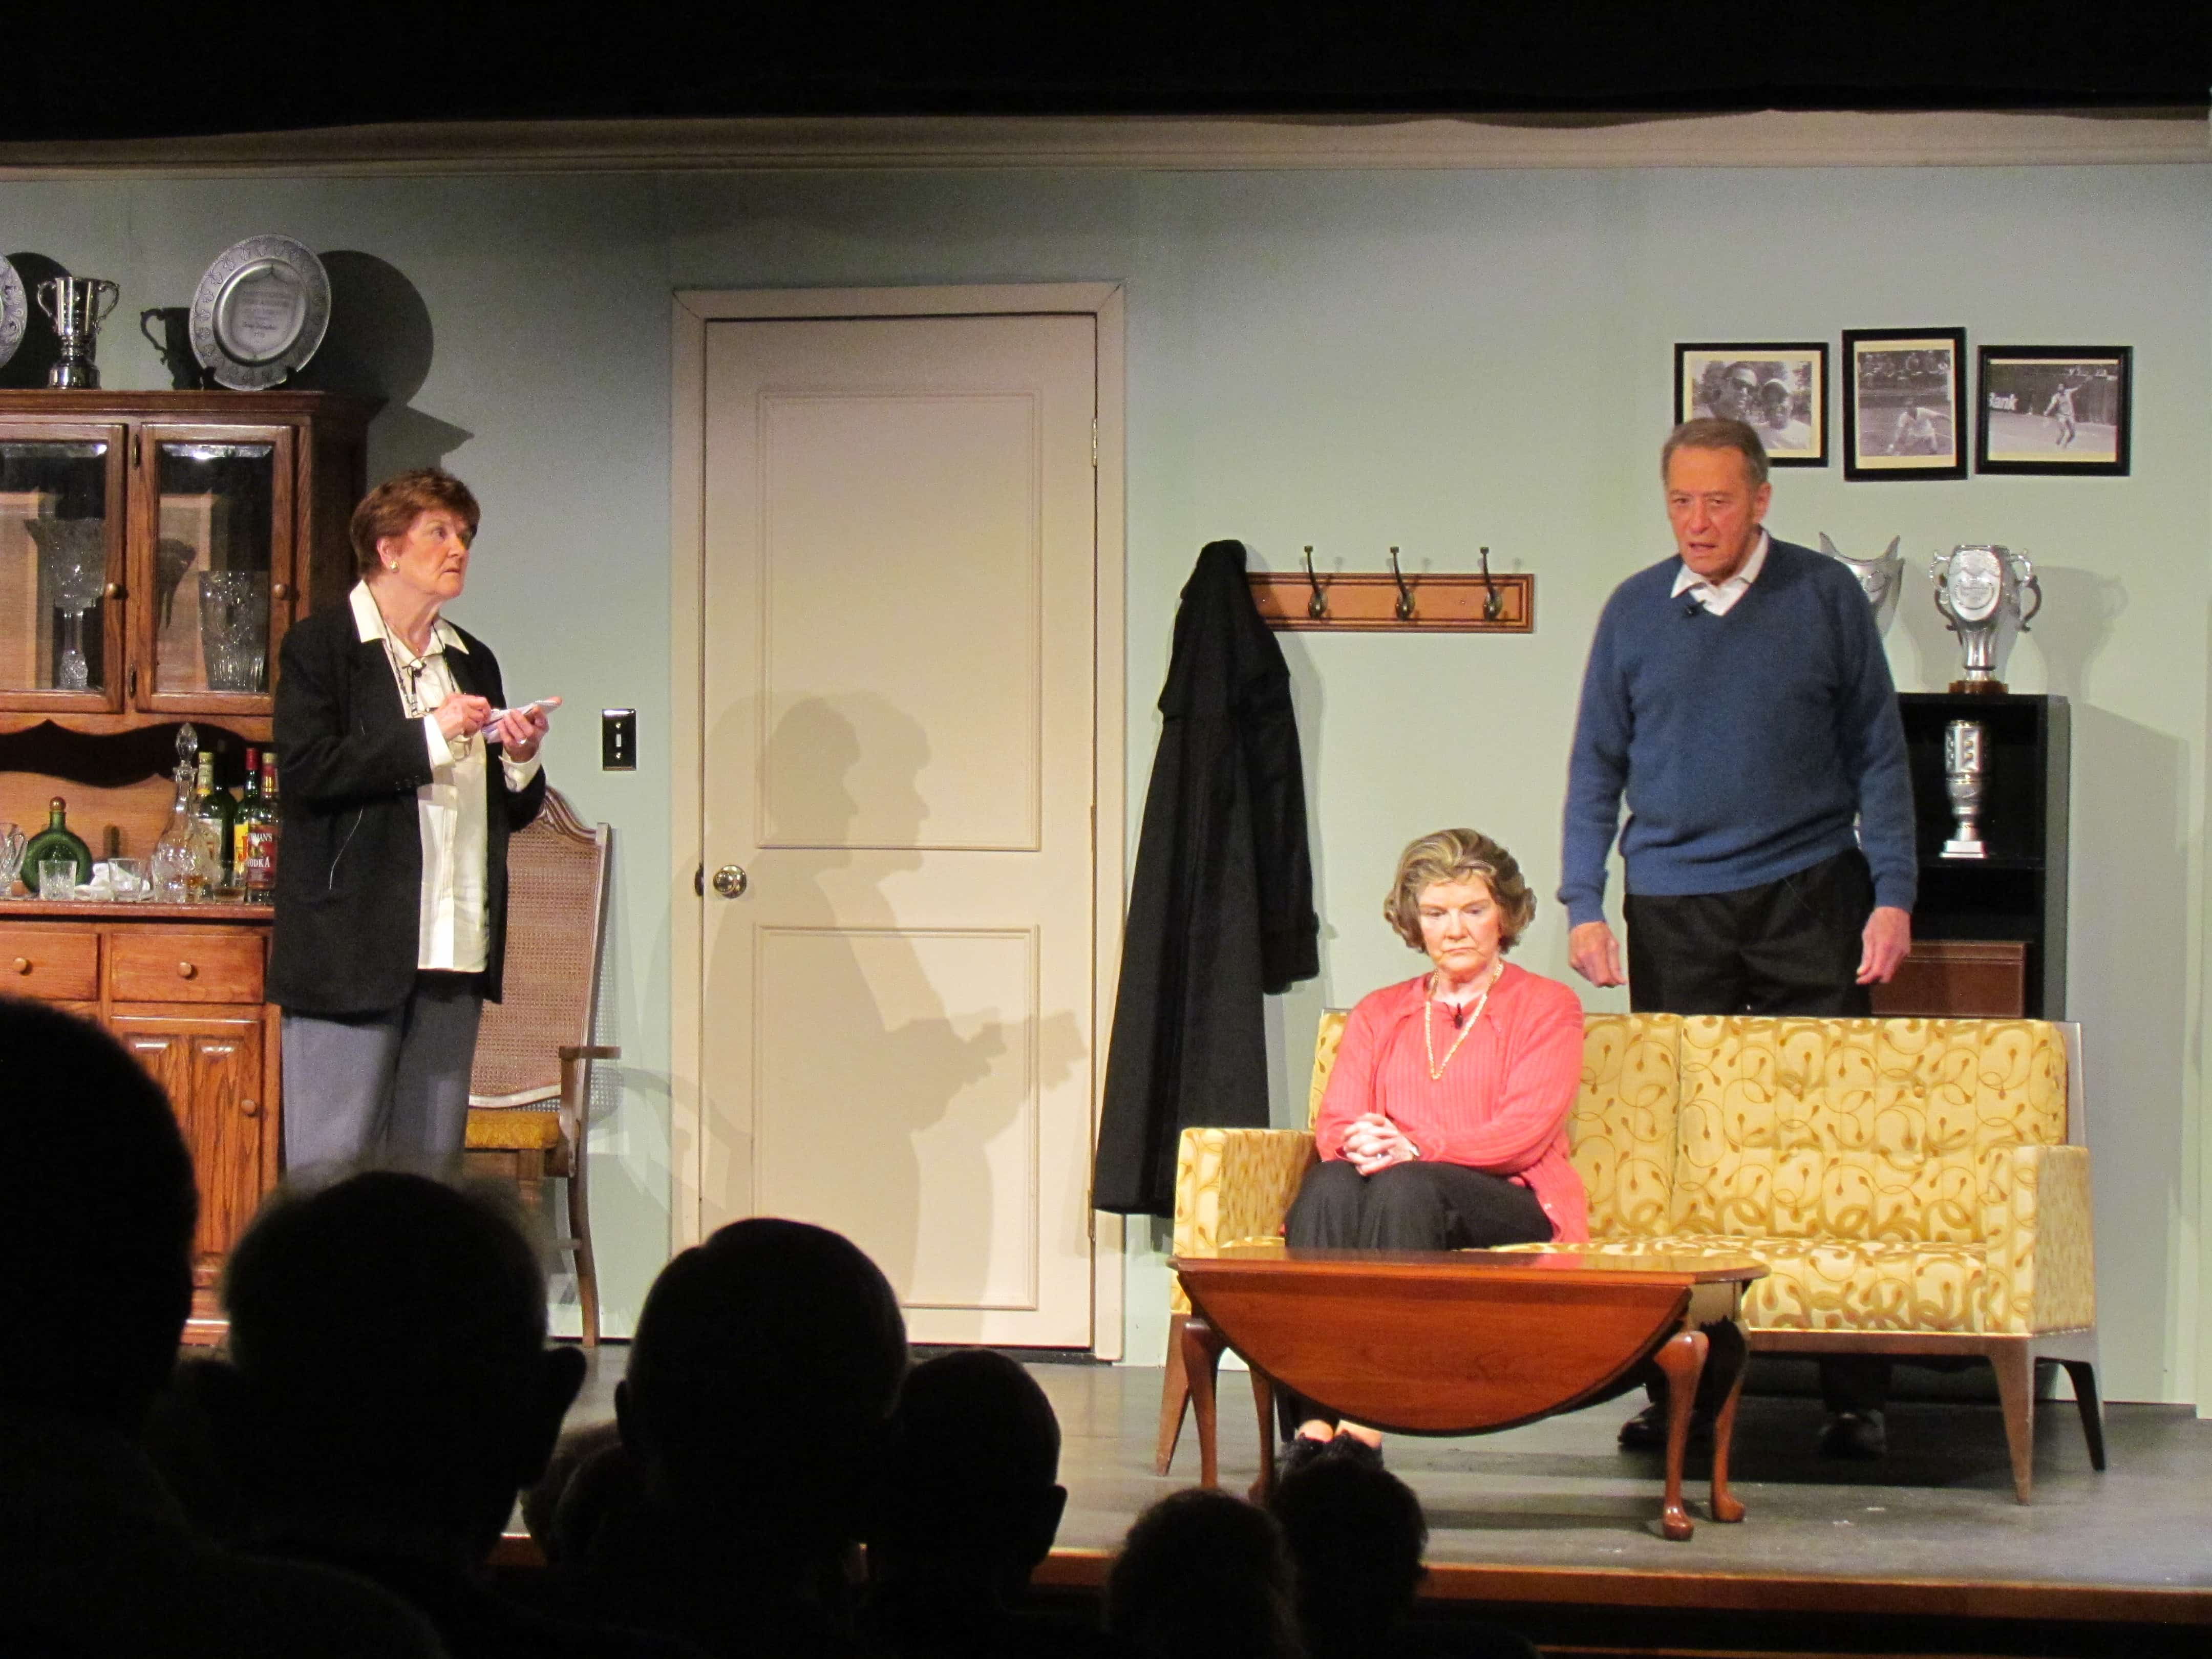 Left to right: Ruth Tomasko (Chief Inspector Hubbard), Janet Rifen (Margot Wendice), and Robert Goolrick (Tony Wendice). Photo by Jessica McKay.